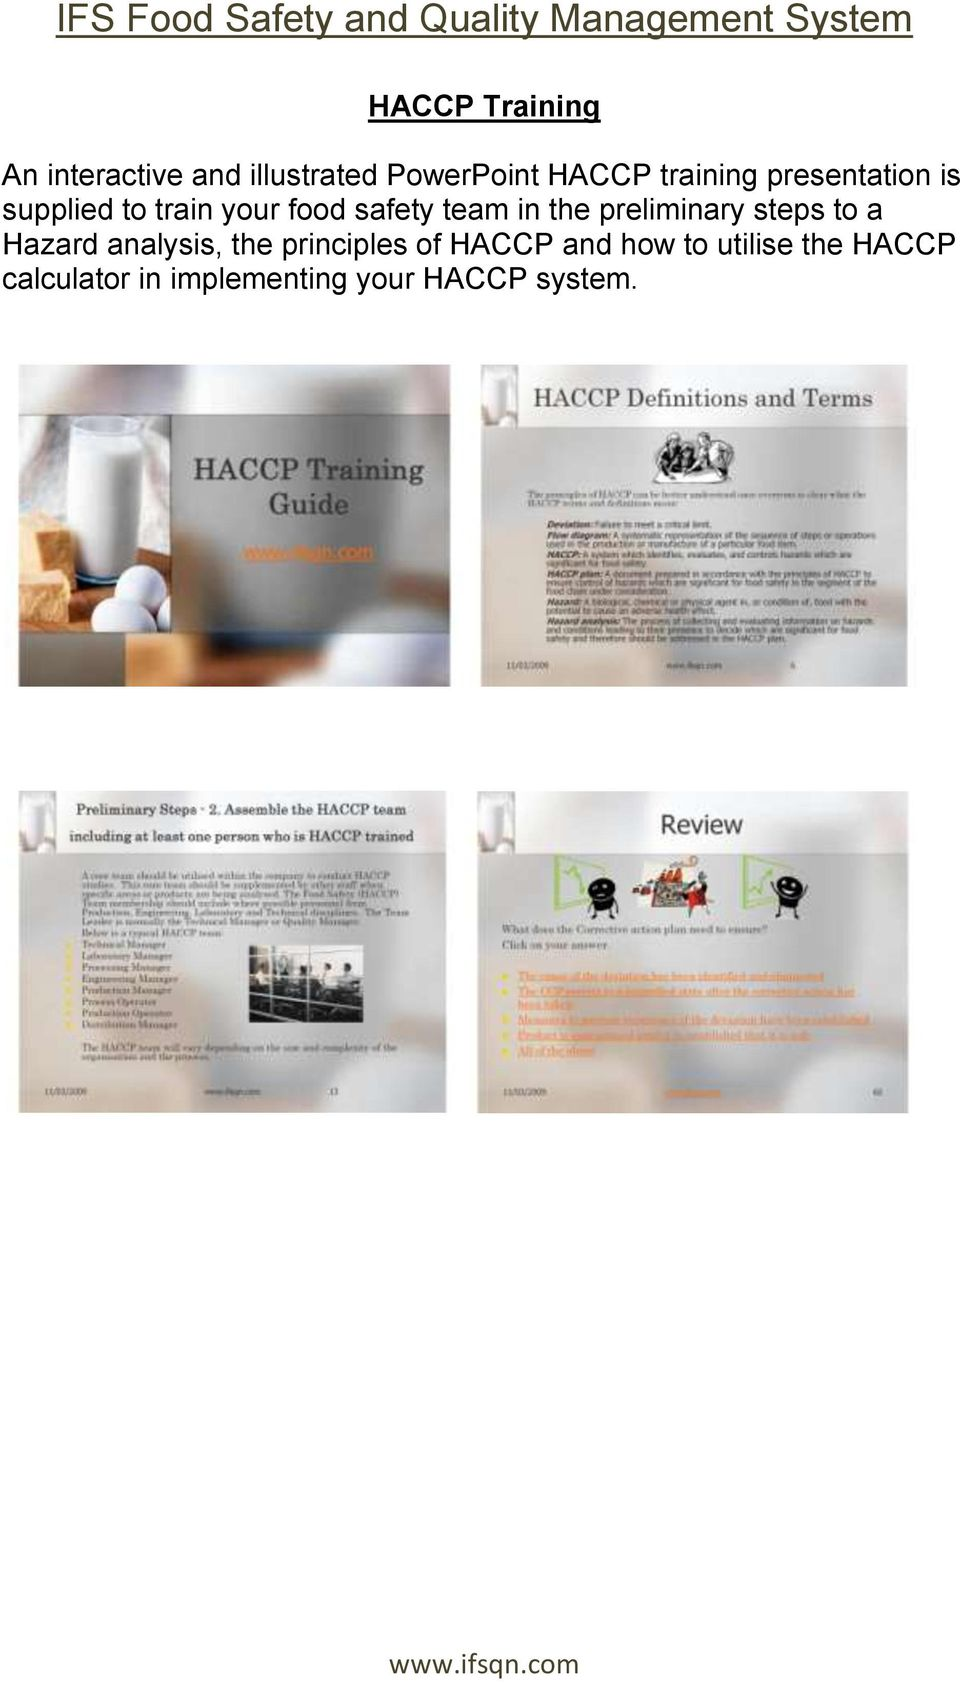 the preliminary steps to a Hazard analysis, the principles of HACCP